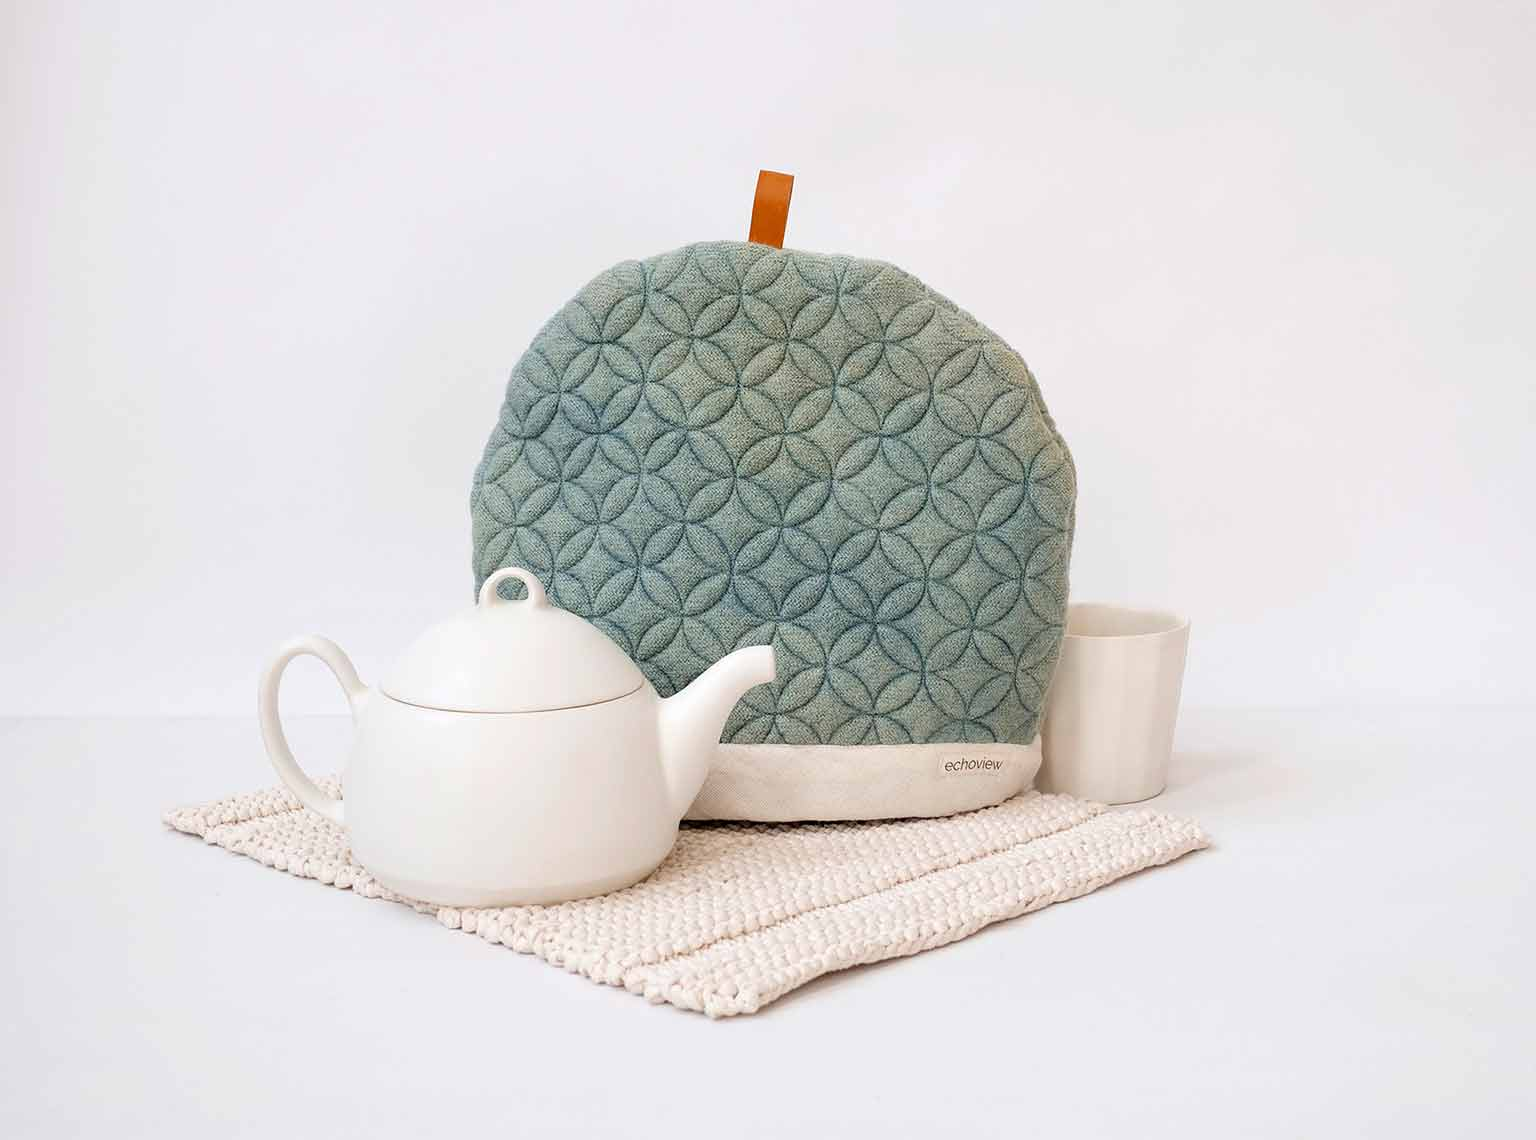 Teapot Warmer - Ethical, Sustainable Holiday Gift Guide - That Homebird Life Blog